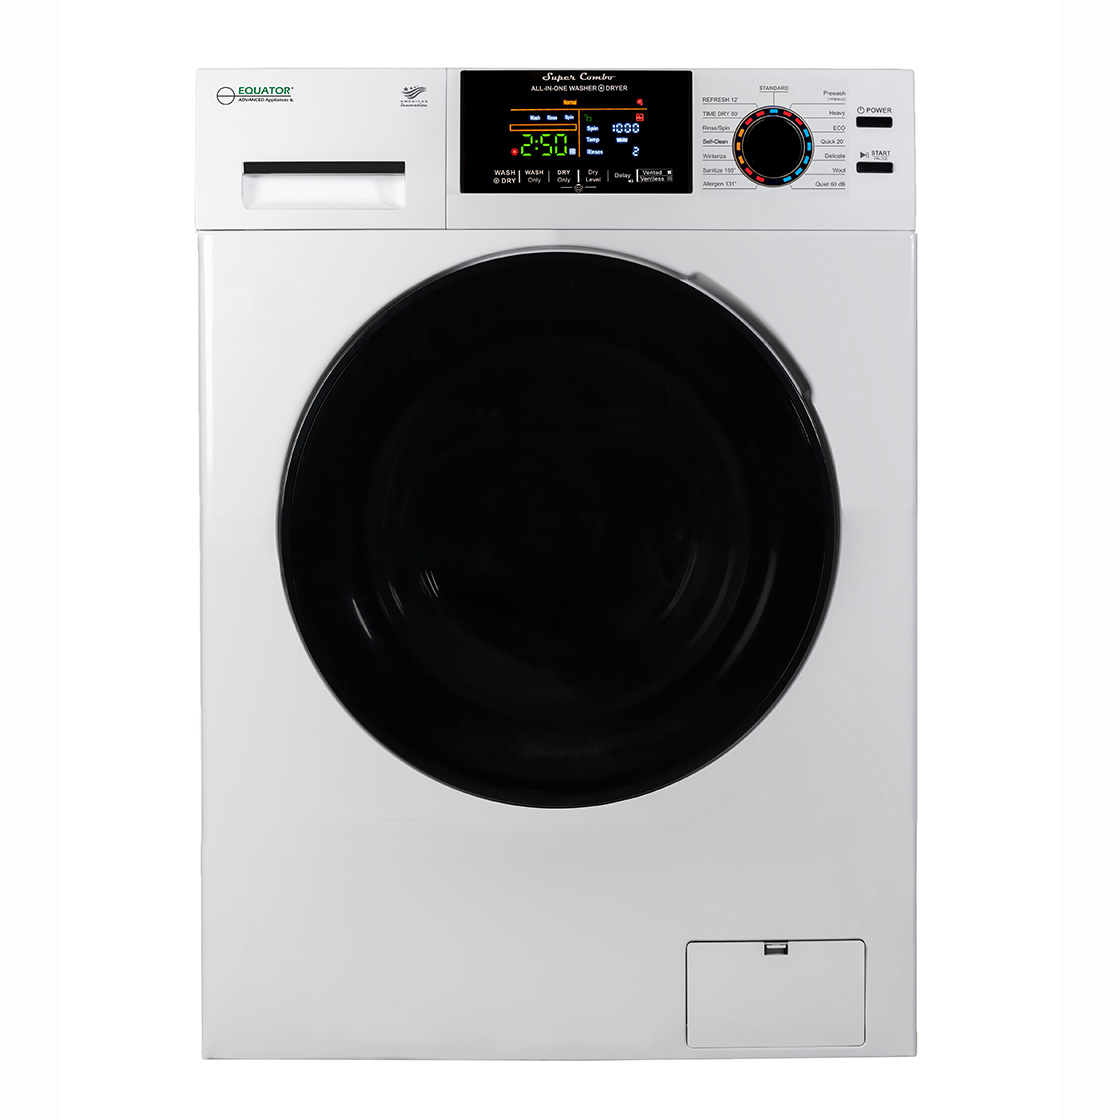 Equator Super Combo Washer-Dryer White EZ 5500 CV